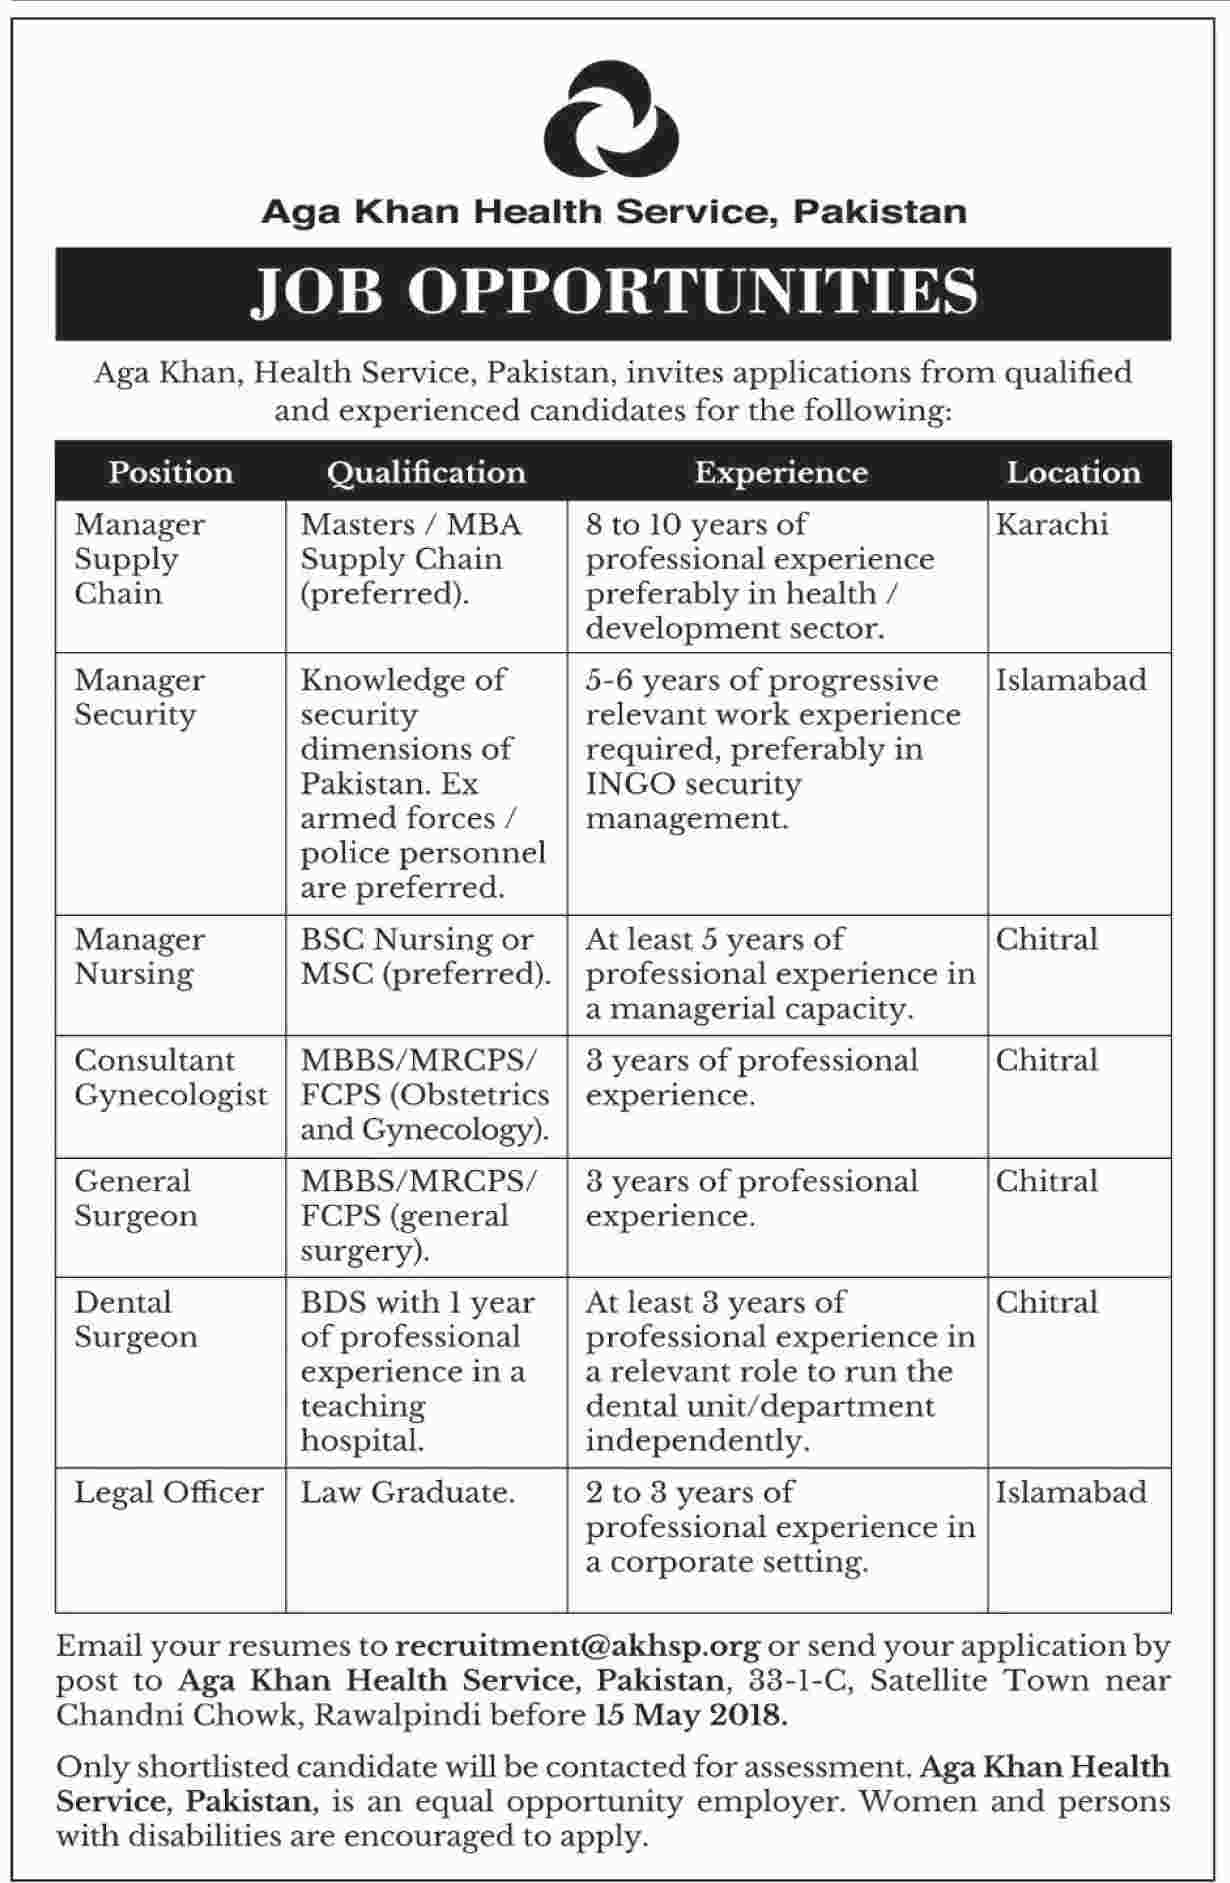 essay on health services in pakistan This ideal model of health care was adopted in the declaration of the international conference on primary health care held in alma ata in 1978, known as the alma ata declaration, and became a core concept of the world health organization's goal of health for all.